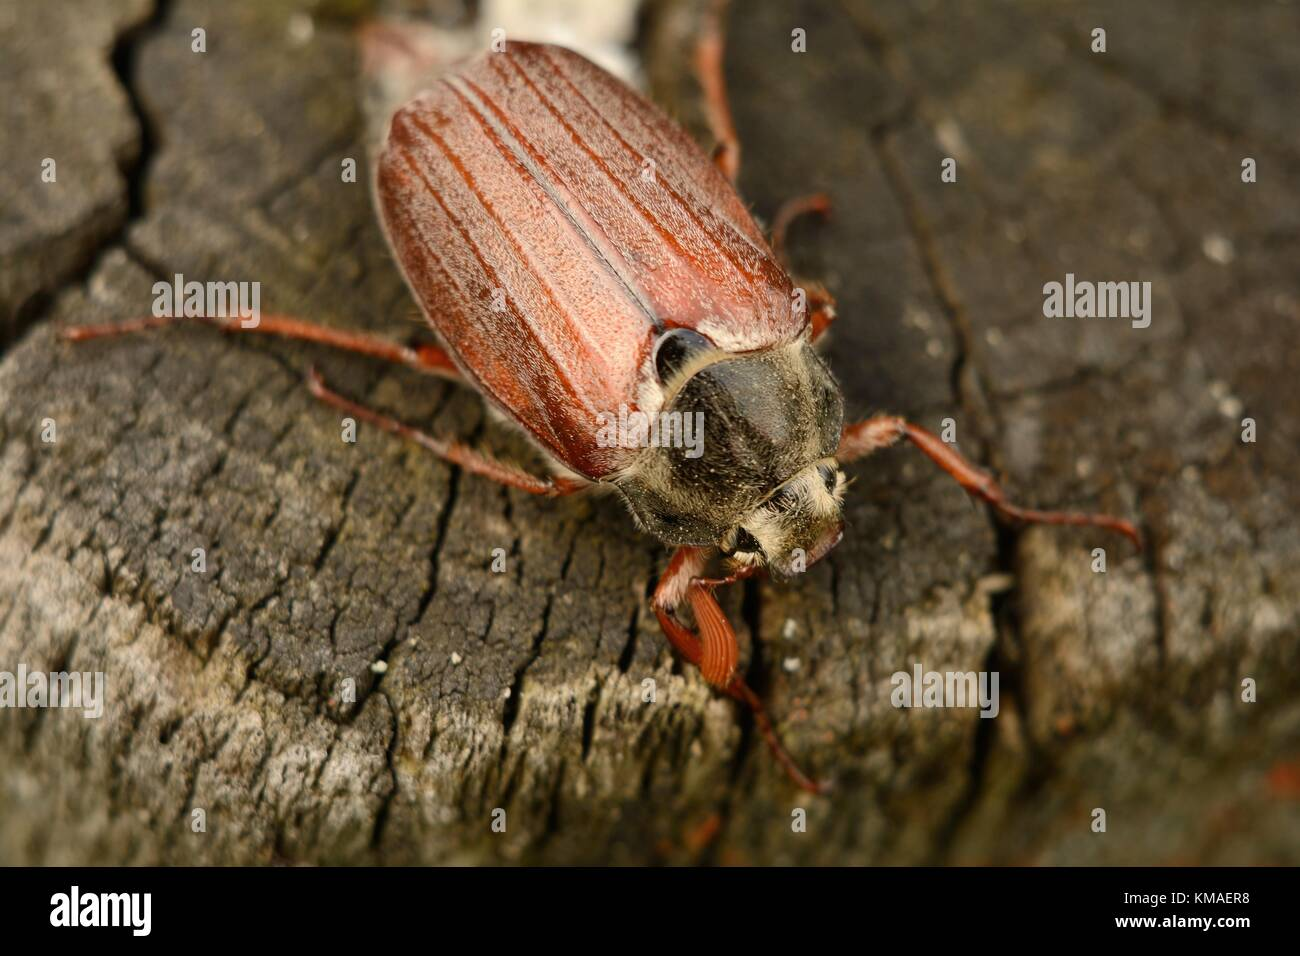 Adult cockchafer (melolontha beetle) Stock Photo